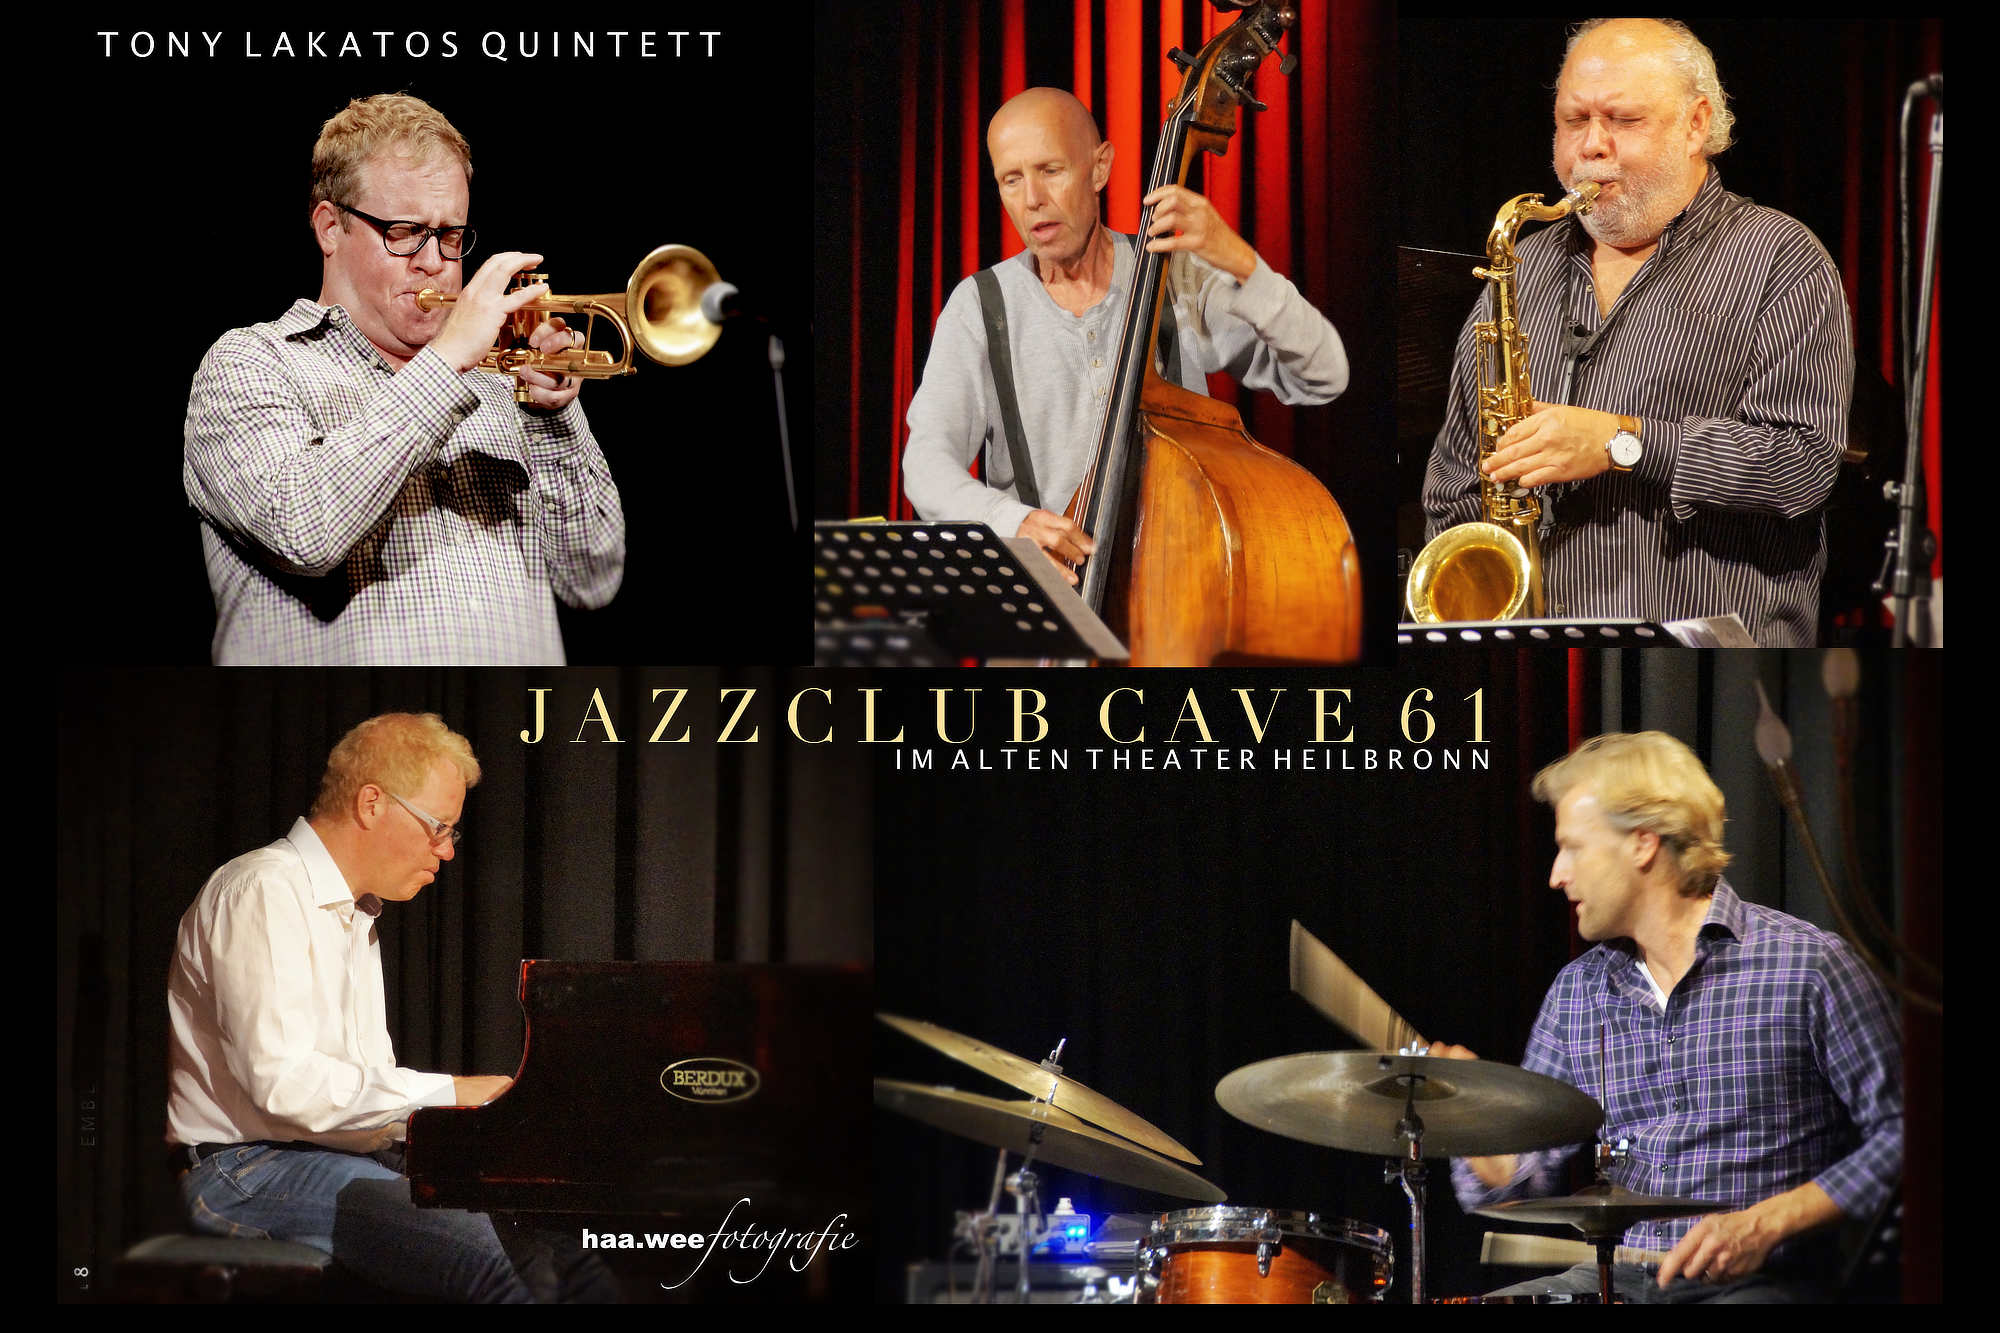 September 2018: Tony Lakatos Quintett